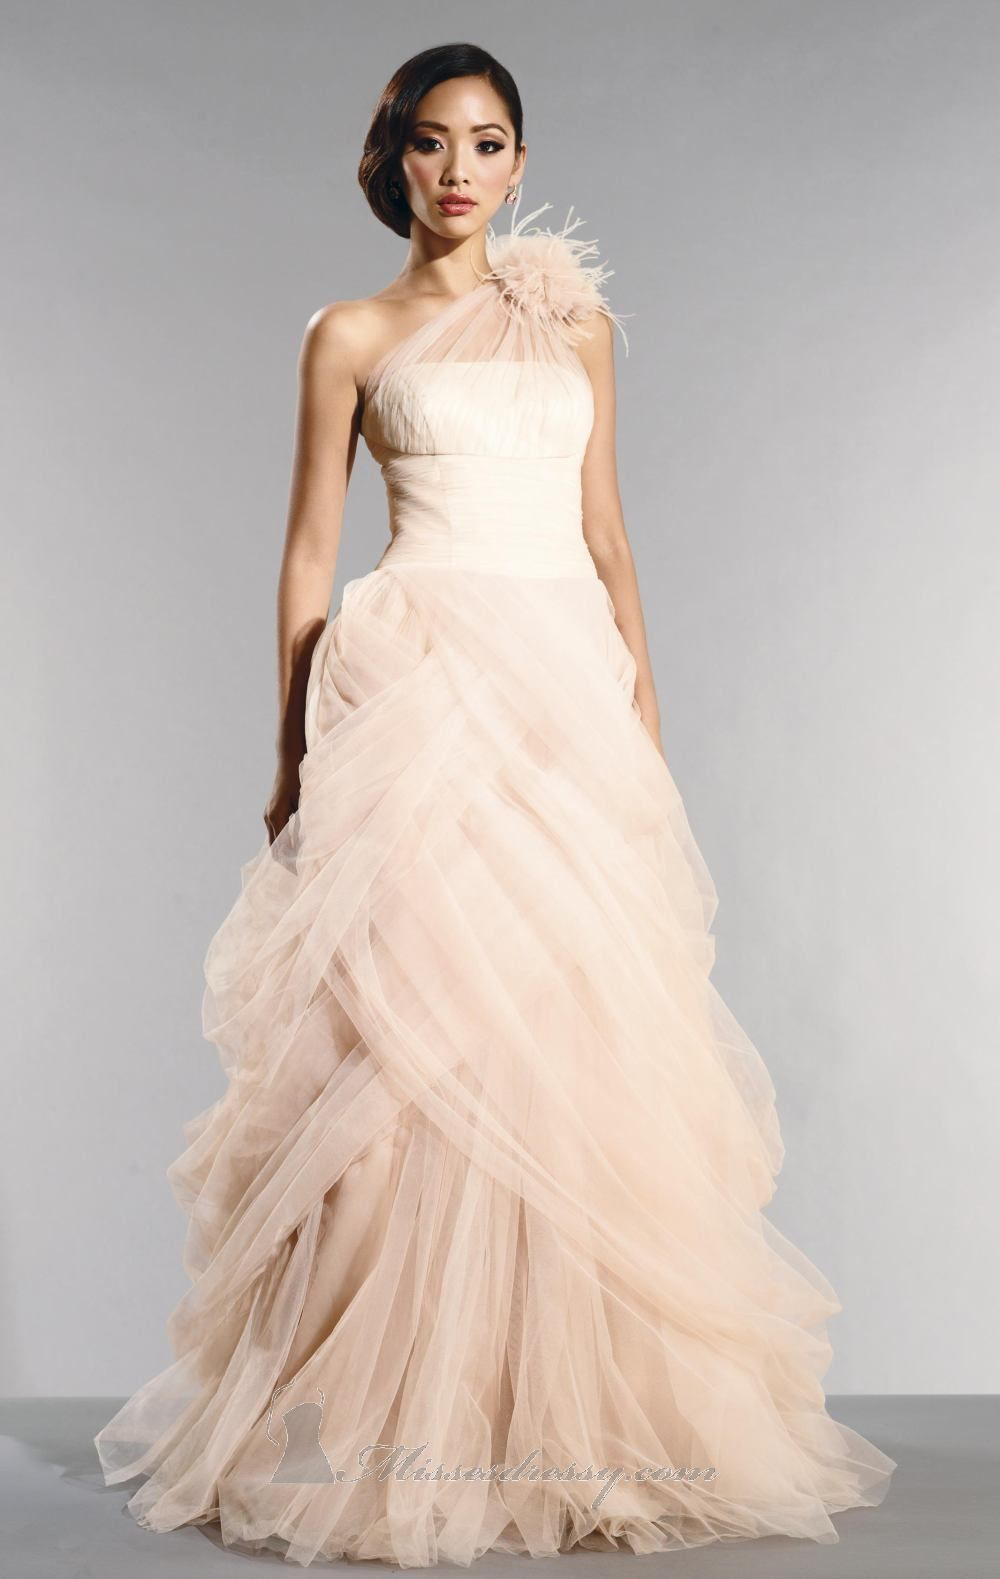 blush wedding dresses Blush wedding dresses are the perfect way to bring some color to your wedding without sacrificing the traditional wedding dress style